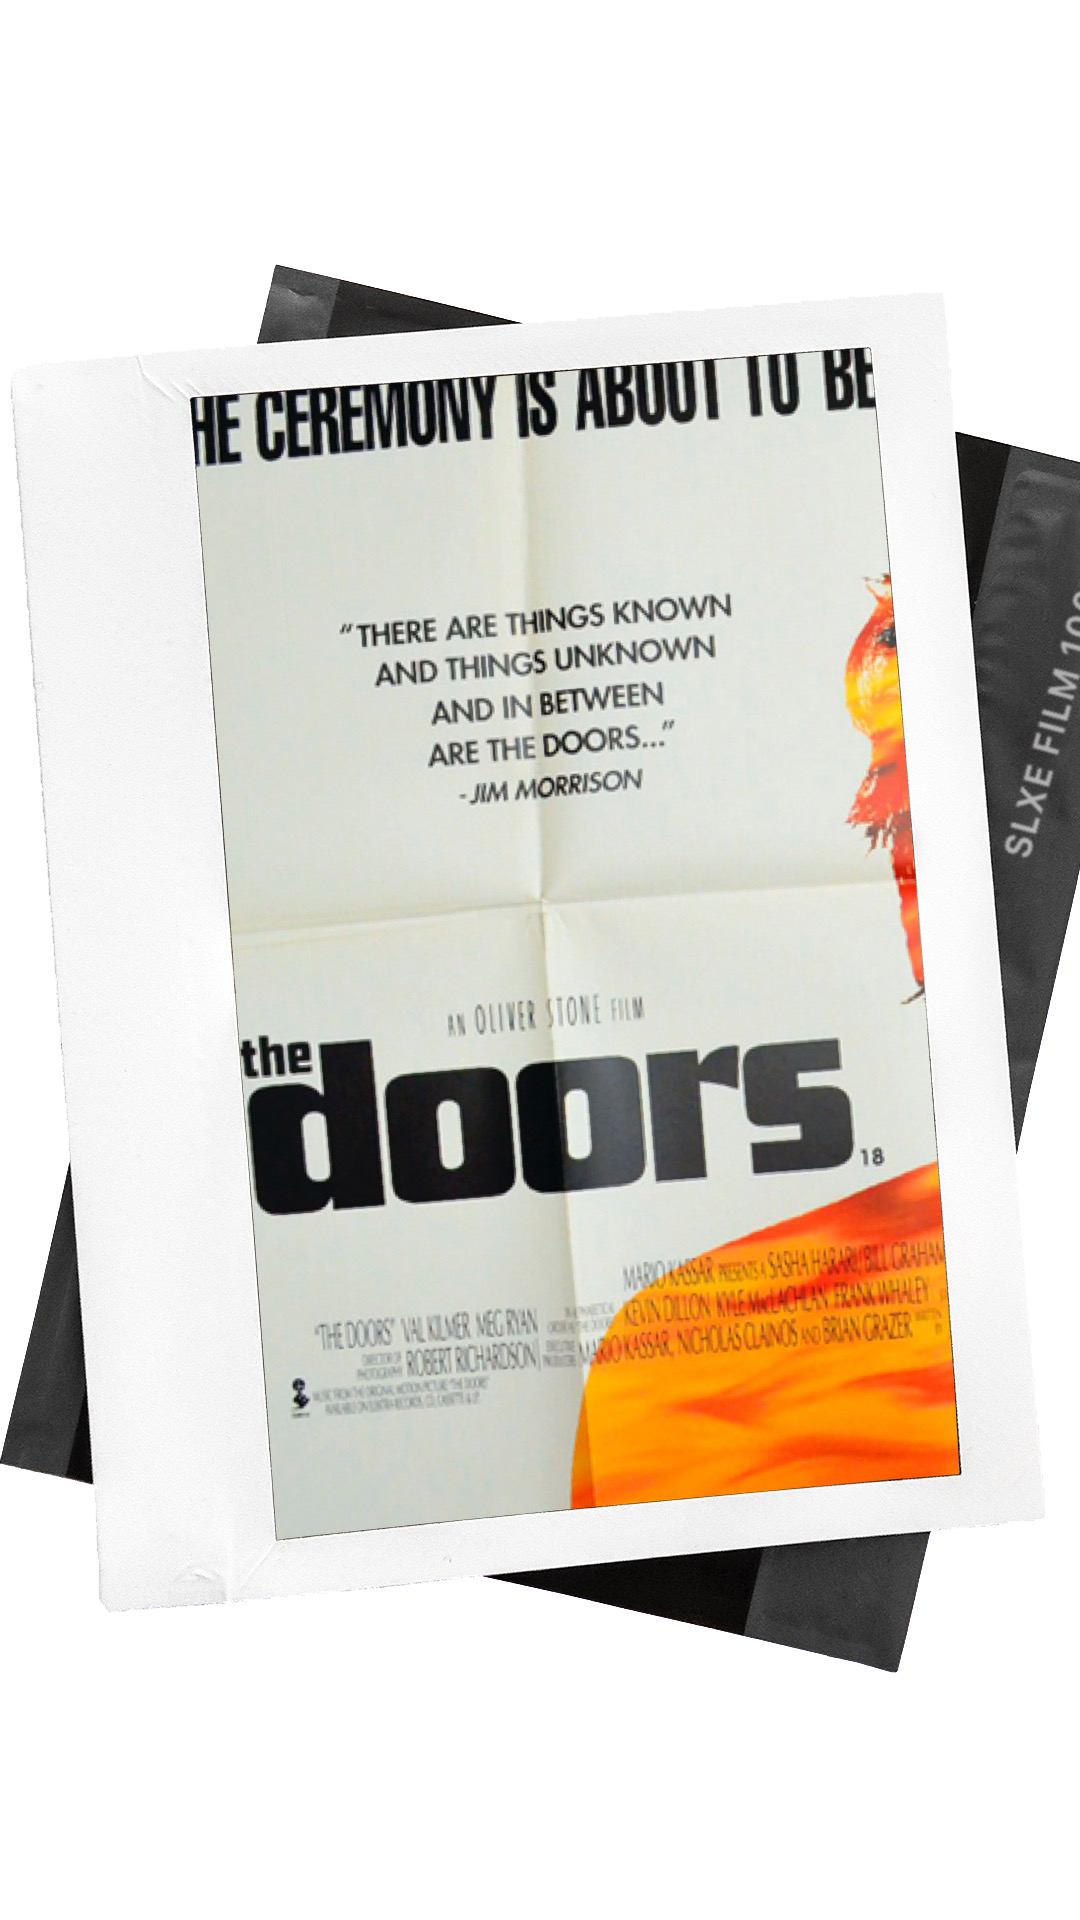 The Doors (a good story/aesthetic) - As the title suggests, The Doors is a biographical film that focuses on the band's frontman Jim Morrison. Everything about this movie is just amazing, starting from Val Kilmer's portrayal of Jim (as well as the fact that he's insanely attractive) to the story itself. It's one of the movies that makes you wish you lived through the '60s and '70s.